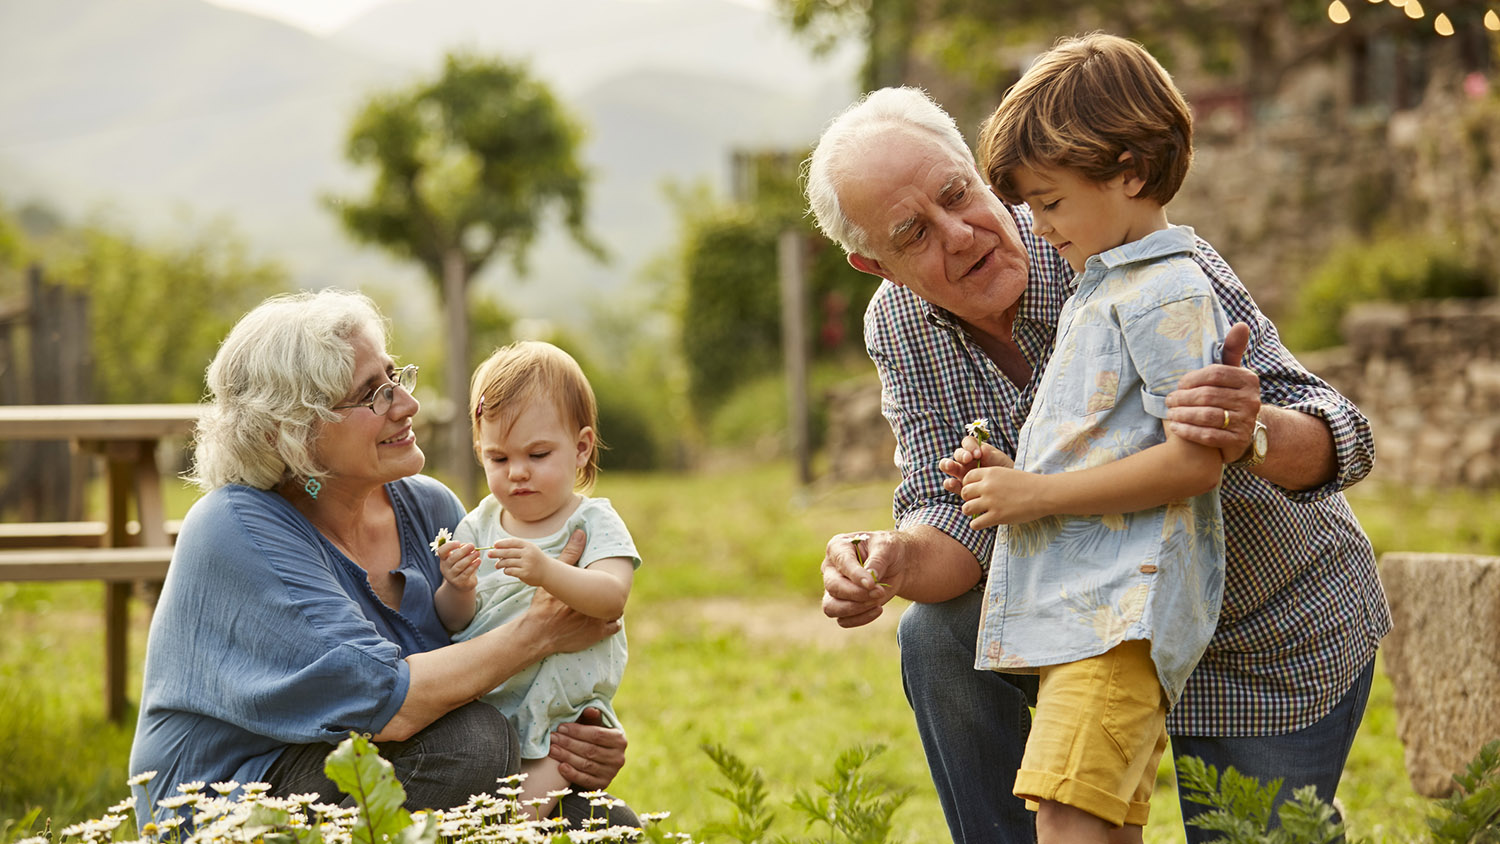 Fun facts about grandparents